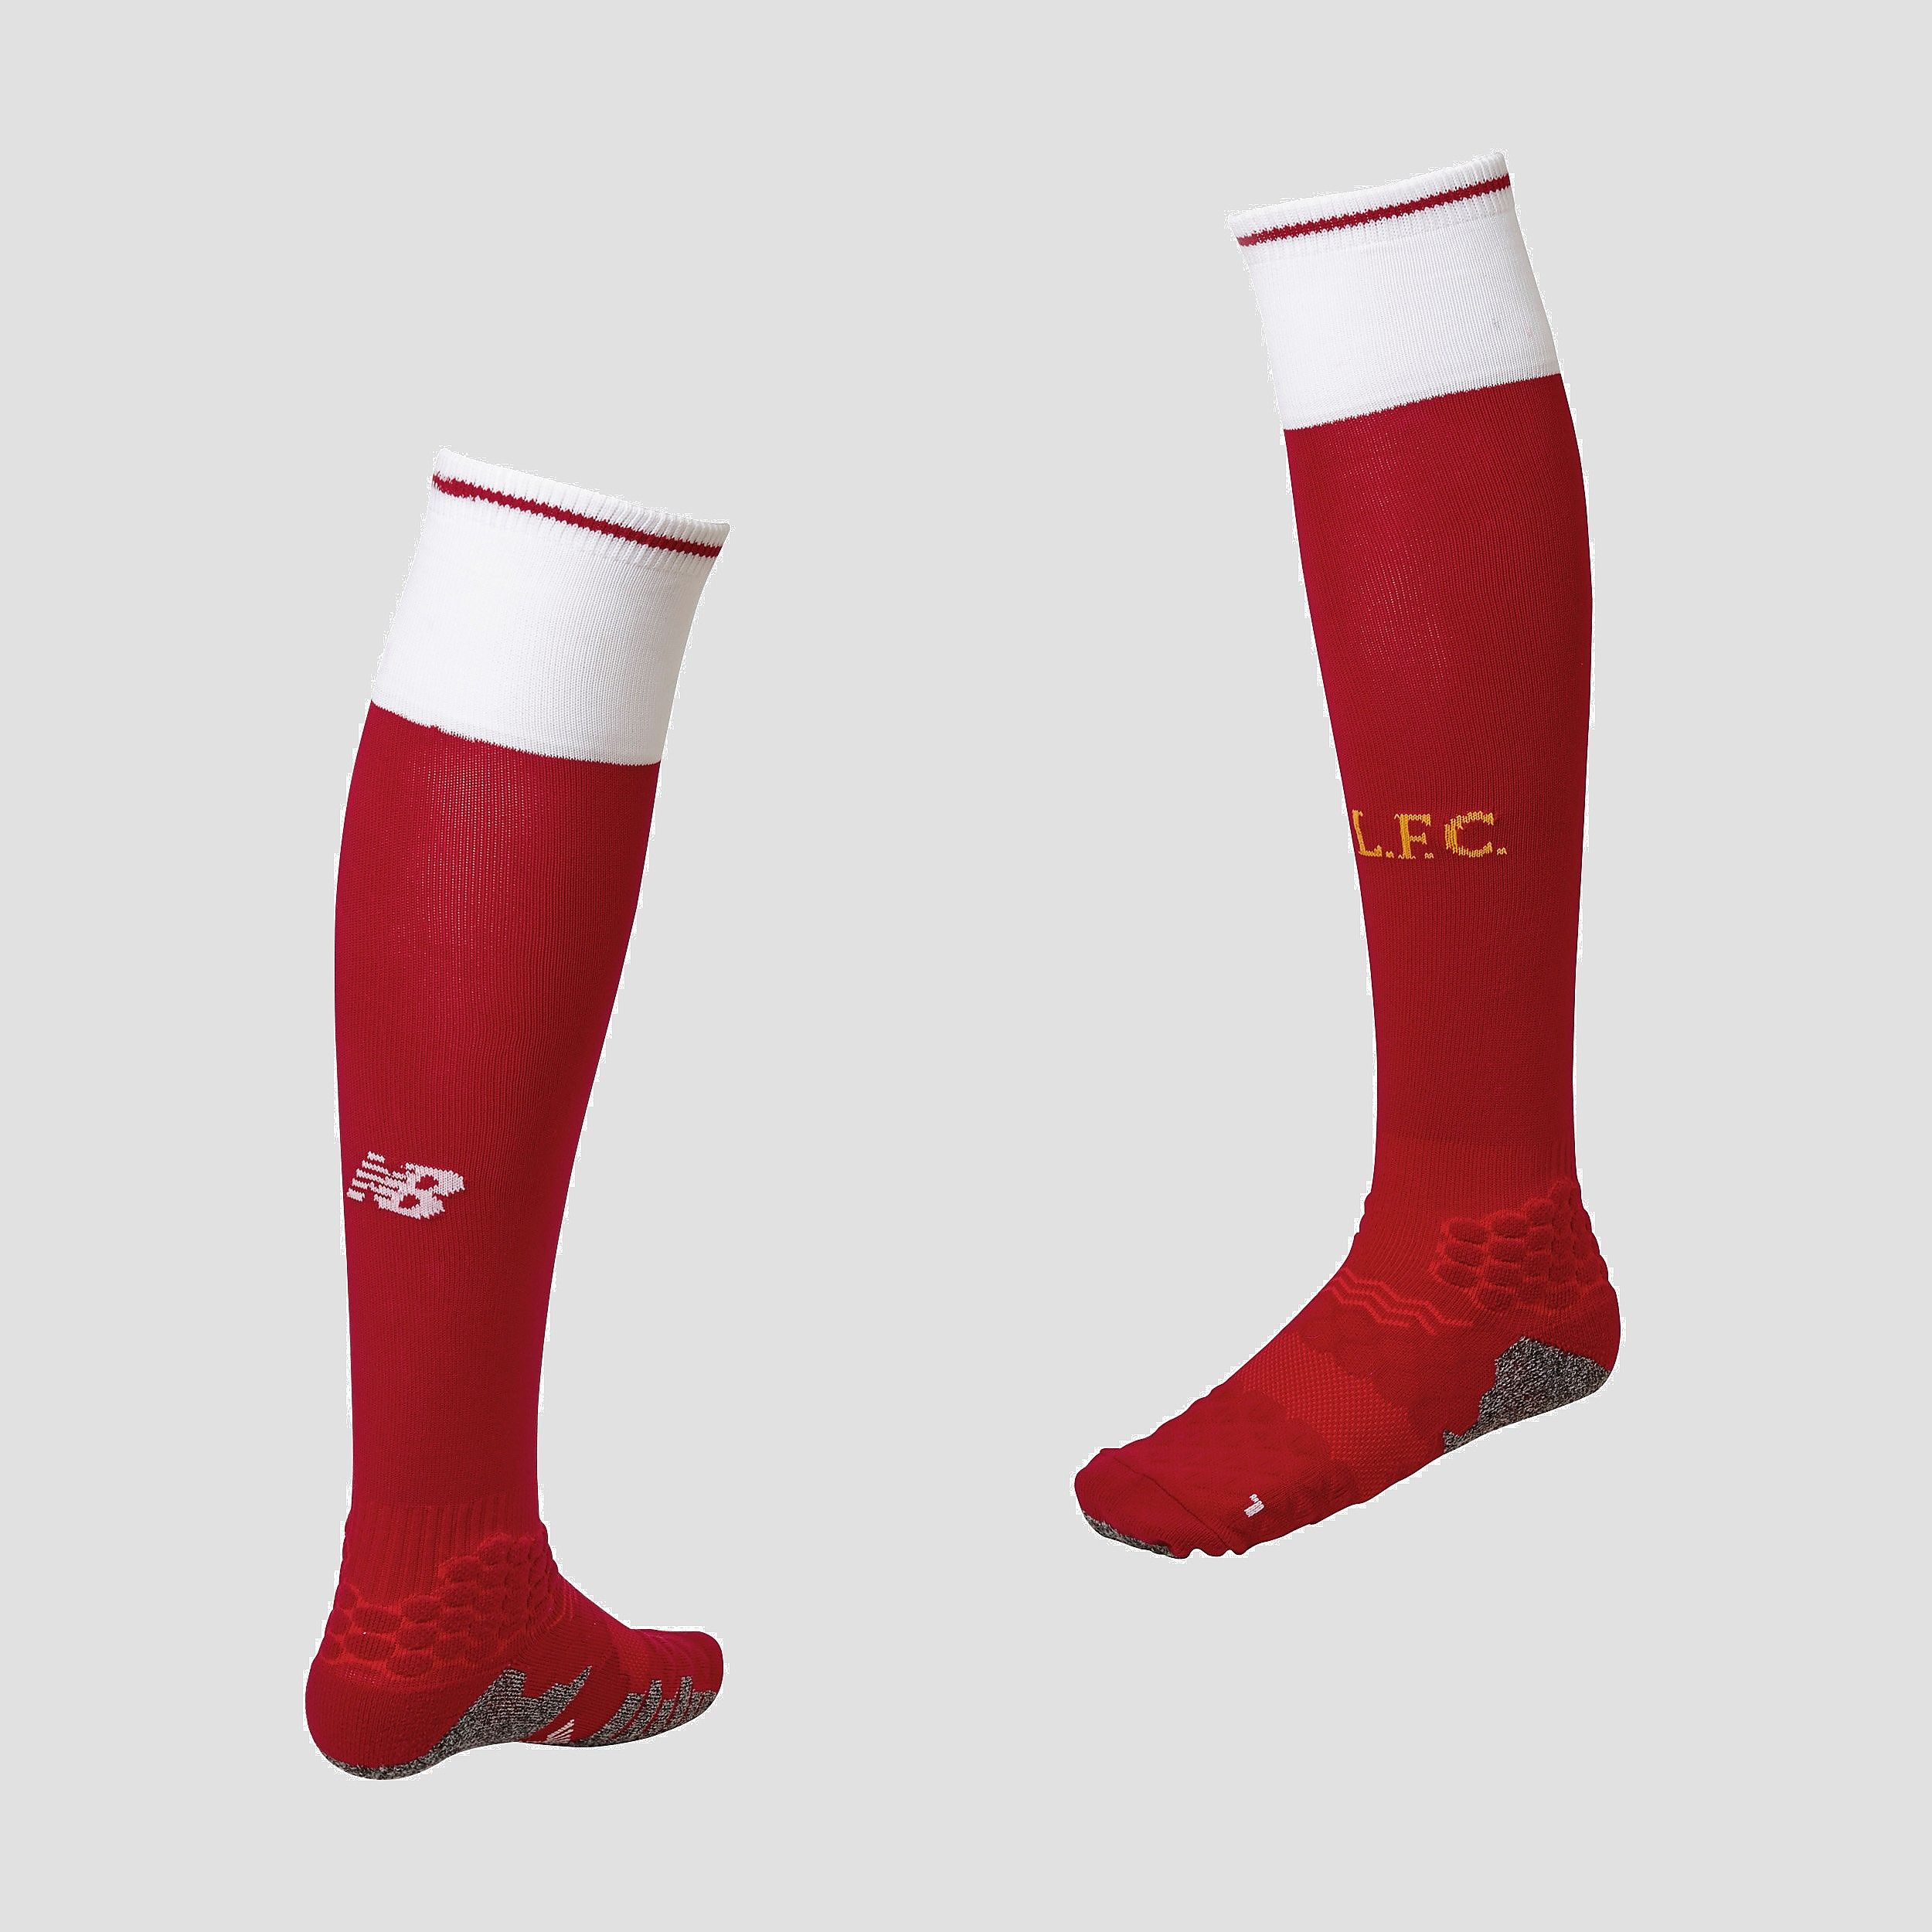 New Balance Liverpool FC 2017/18 Home Men's Socks Pre order